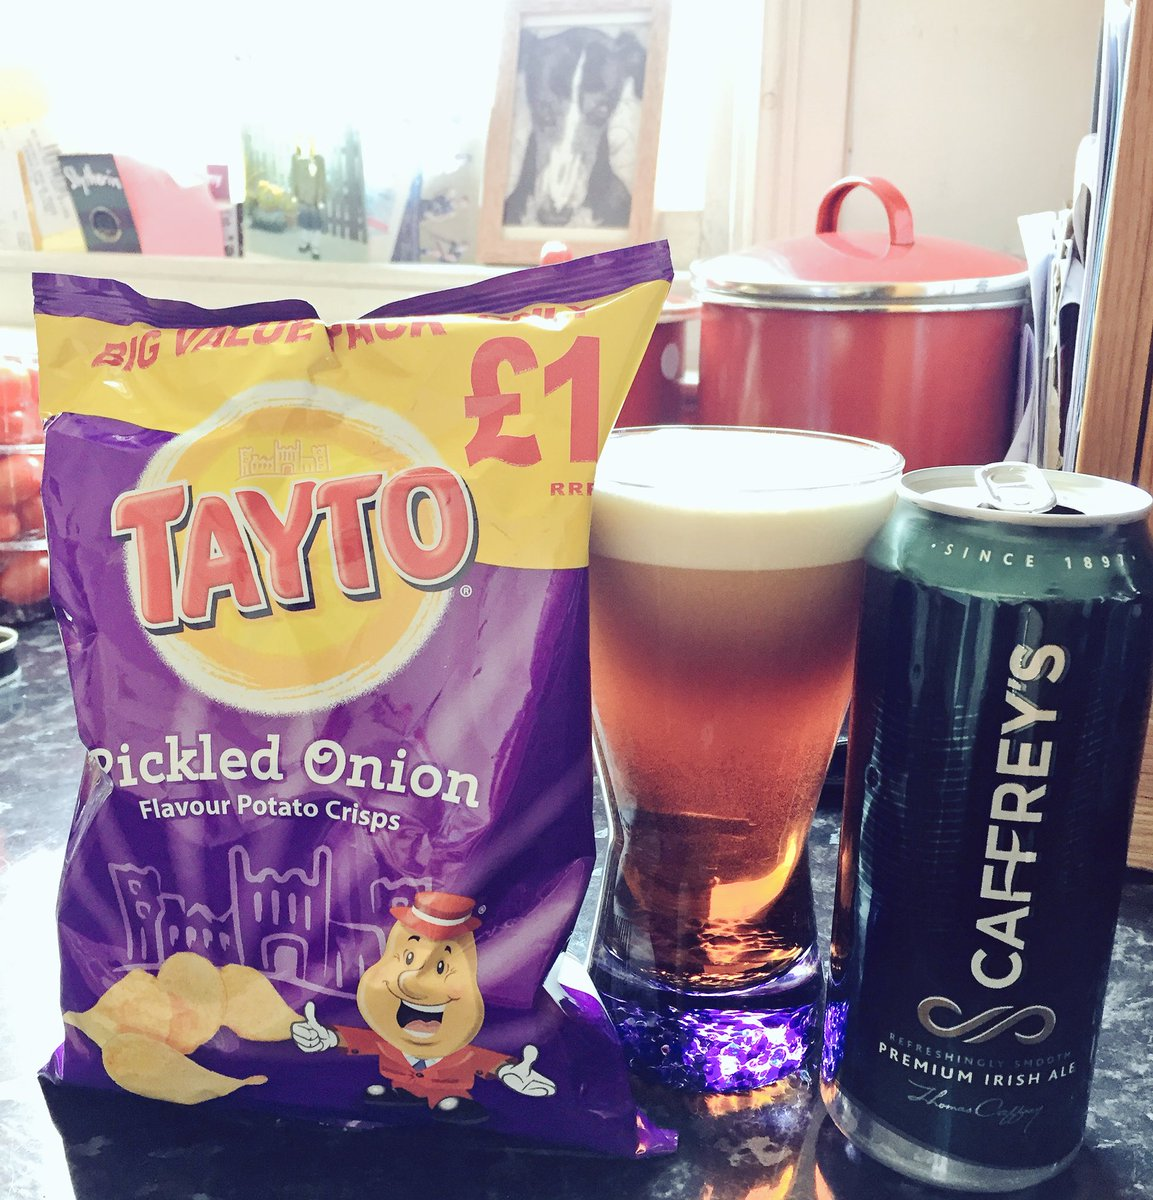 Rugby refreshments are a go! #ShoulderToShoulder #TeamOfUs #ENGvIRE #Ireland ☘️☘️🏉🏉☘️☘️😍